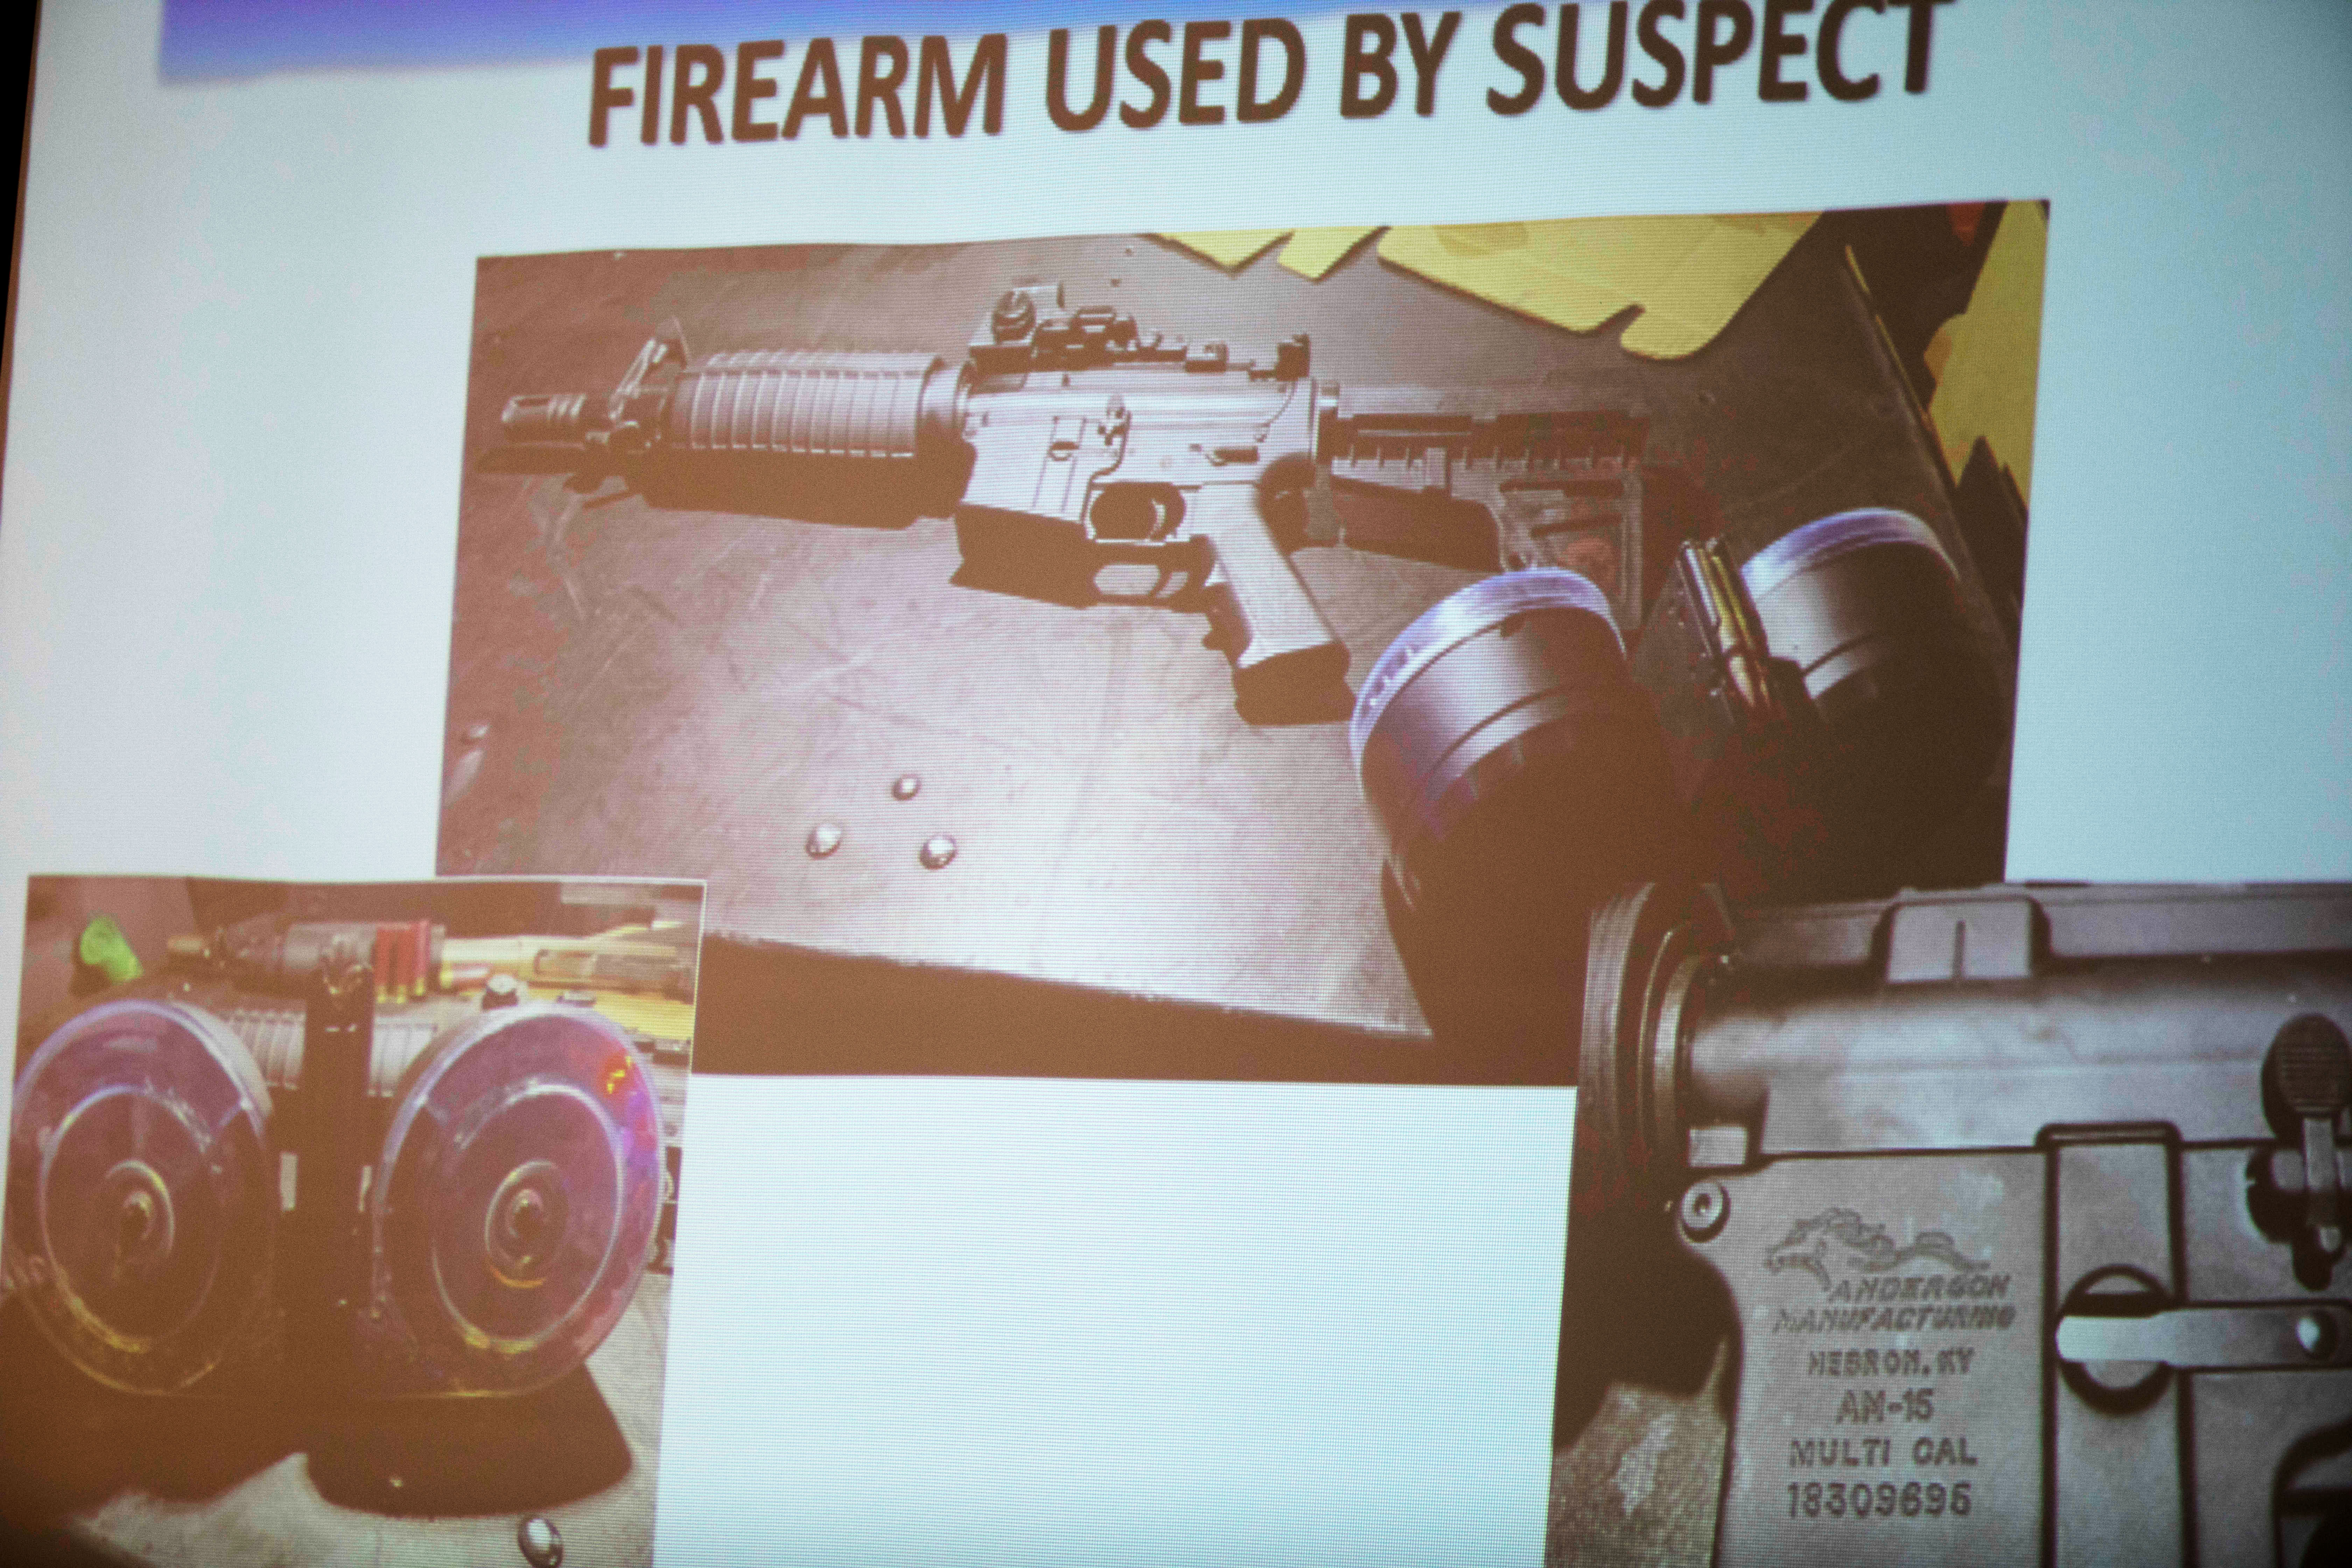 The firearm used by the shooter Connor Betts, 22, is projected on a screen during a news conference Sunday, Aug. 4, 2019, about a fatal mass shooting along the 400 block of E. Fifth Street, in Dayton, Ohio.